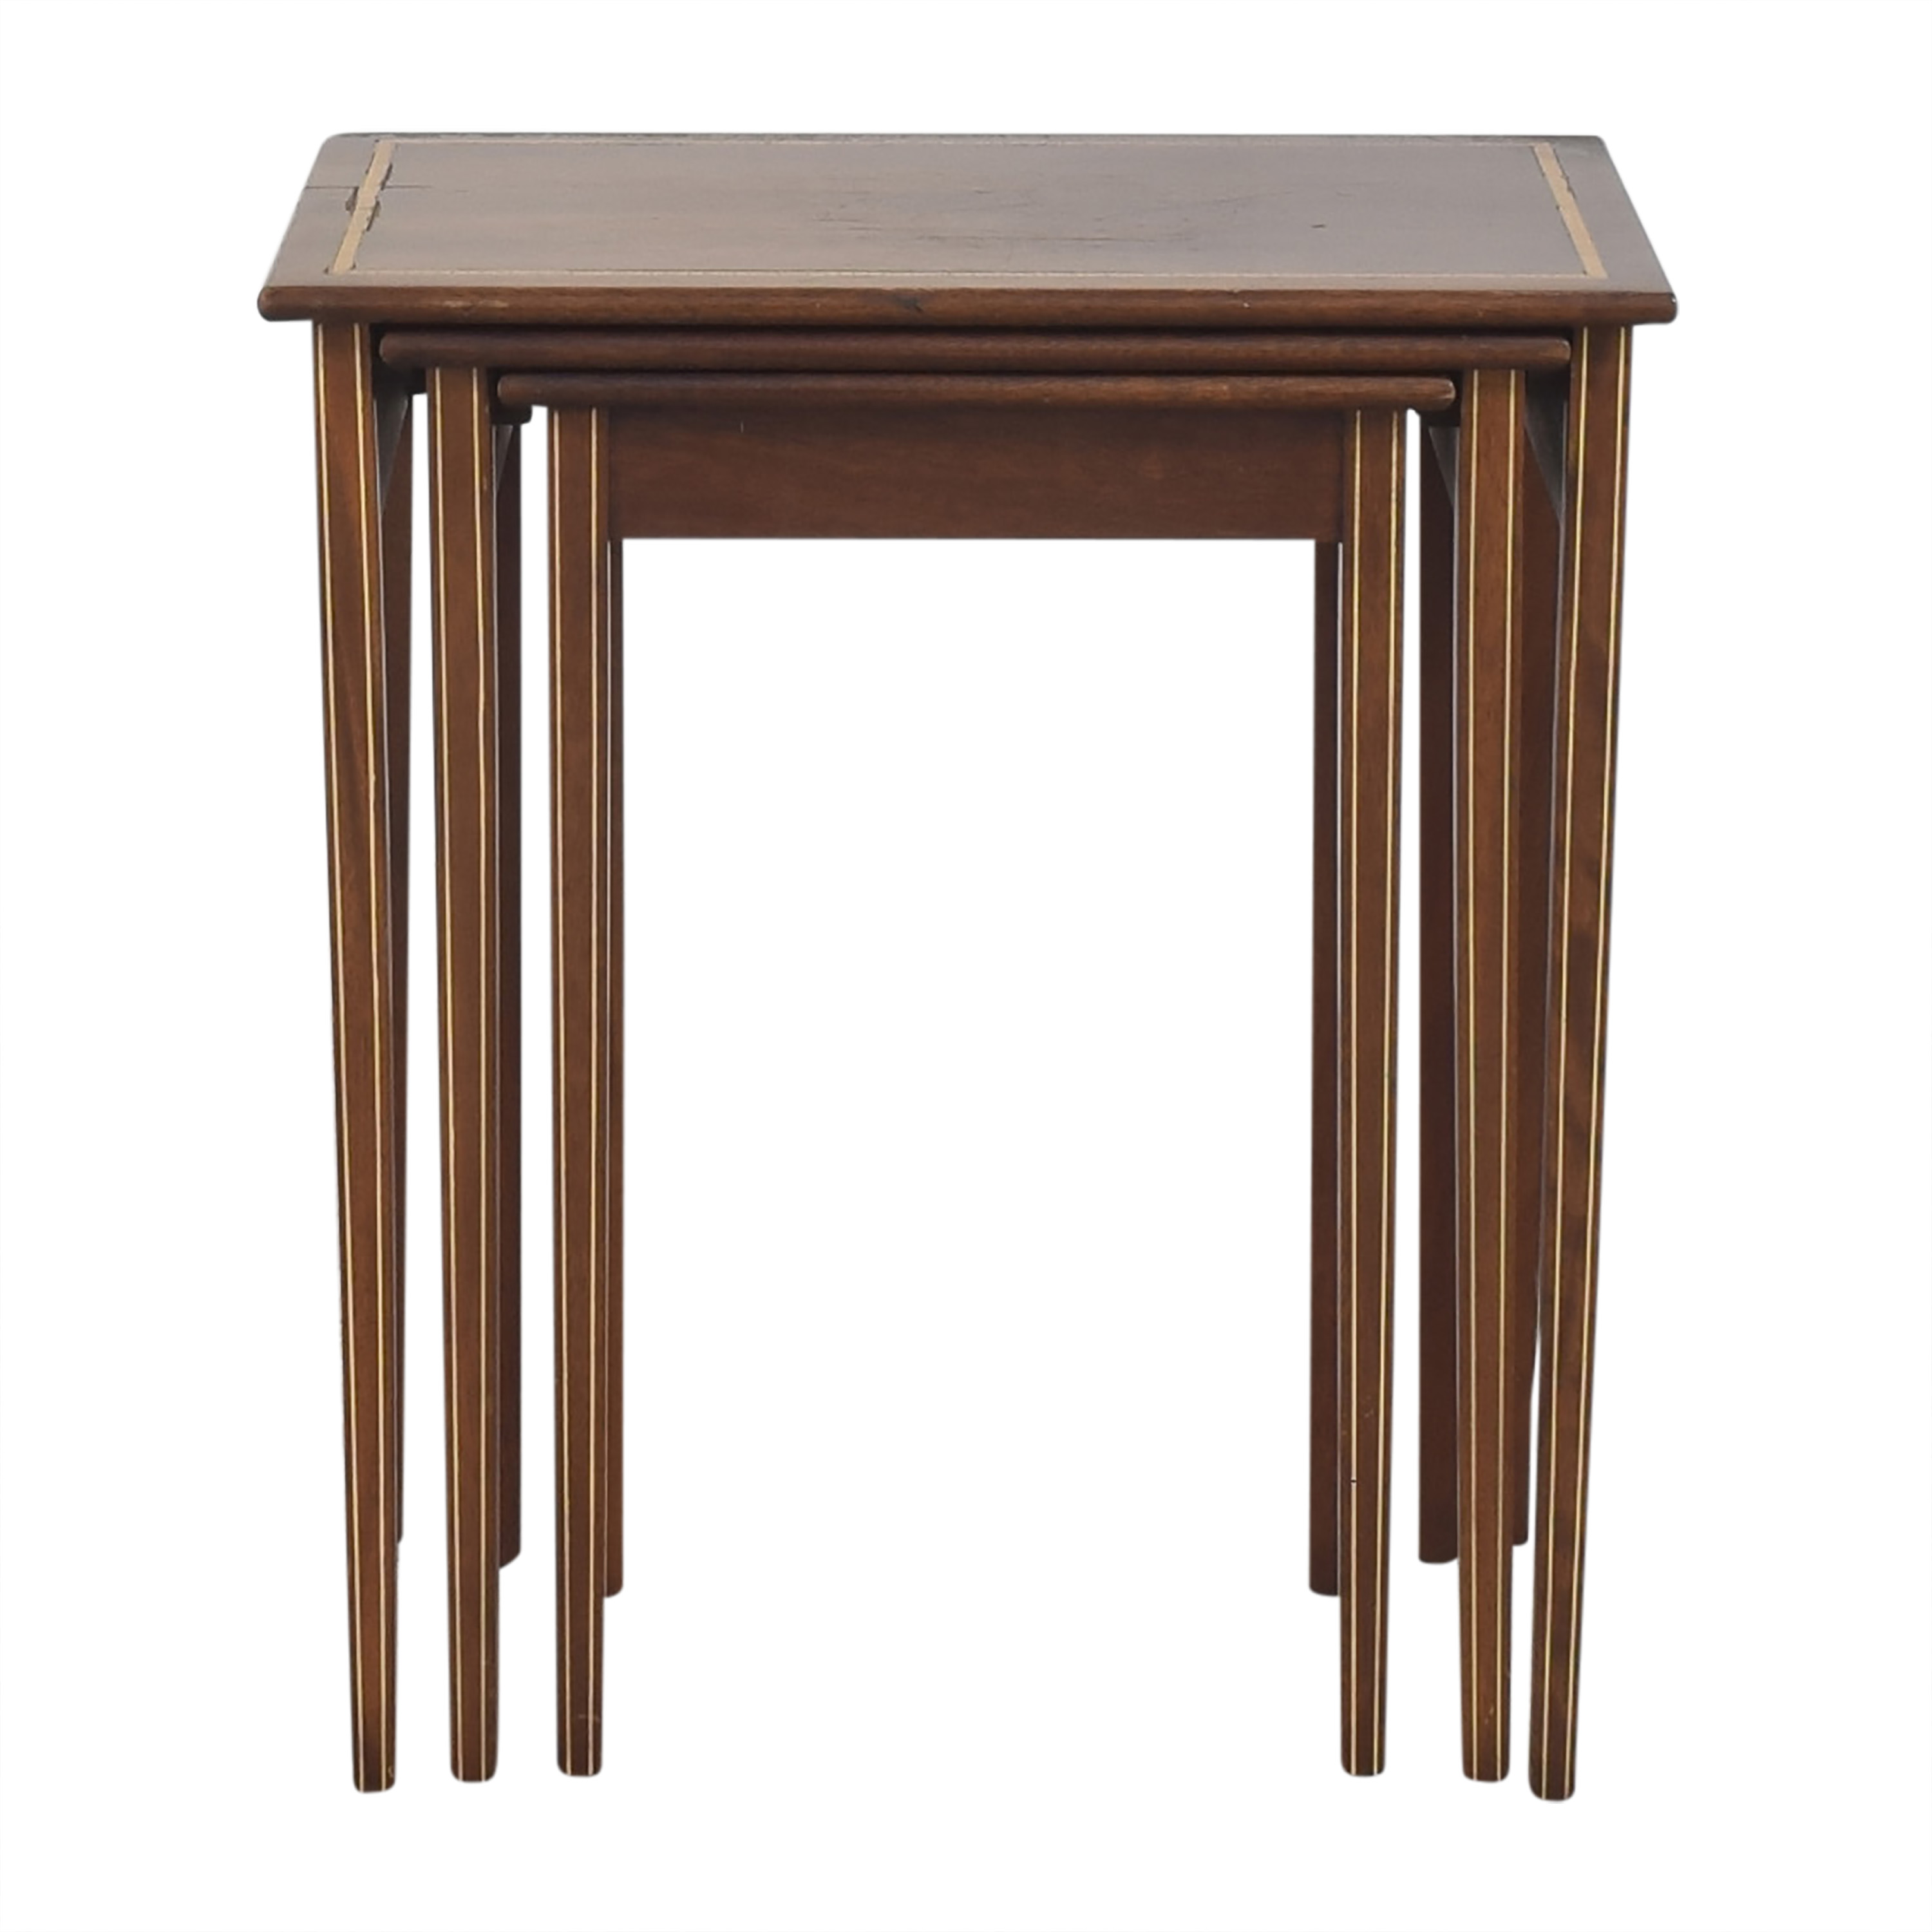 Nesting End Tables used